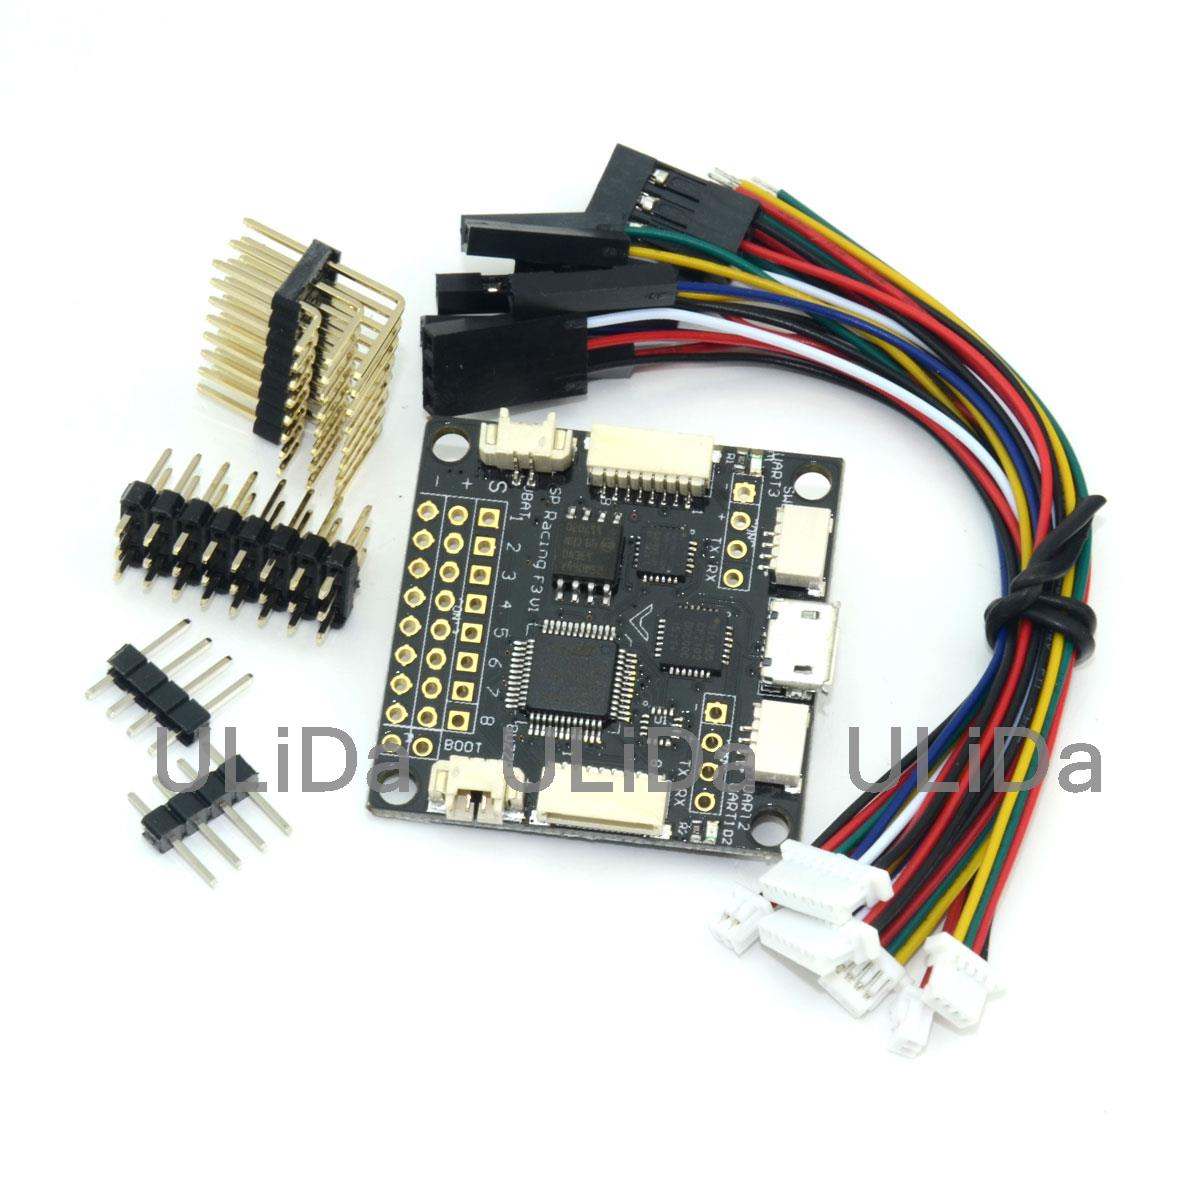 sp racing f3 acro flight controller board fc for fpv quadcopter multicopter in parts accessories from toys hobbies on aliexpress com alibaba group [ 1200 x 1200 Pixel ]